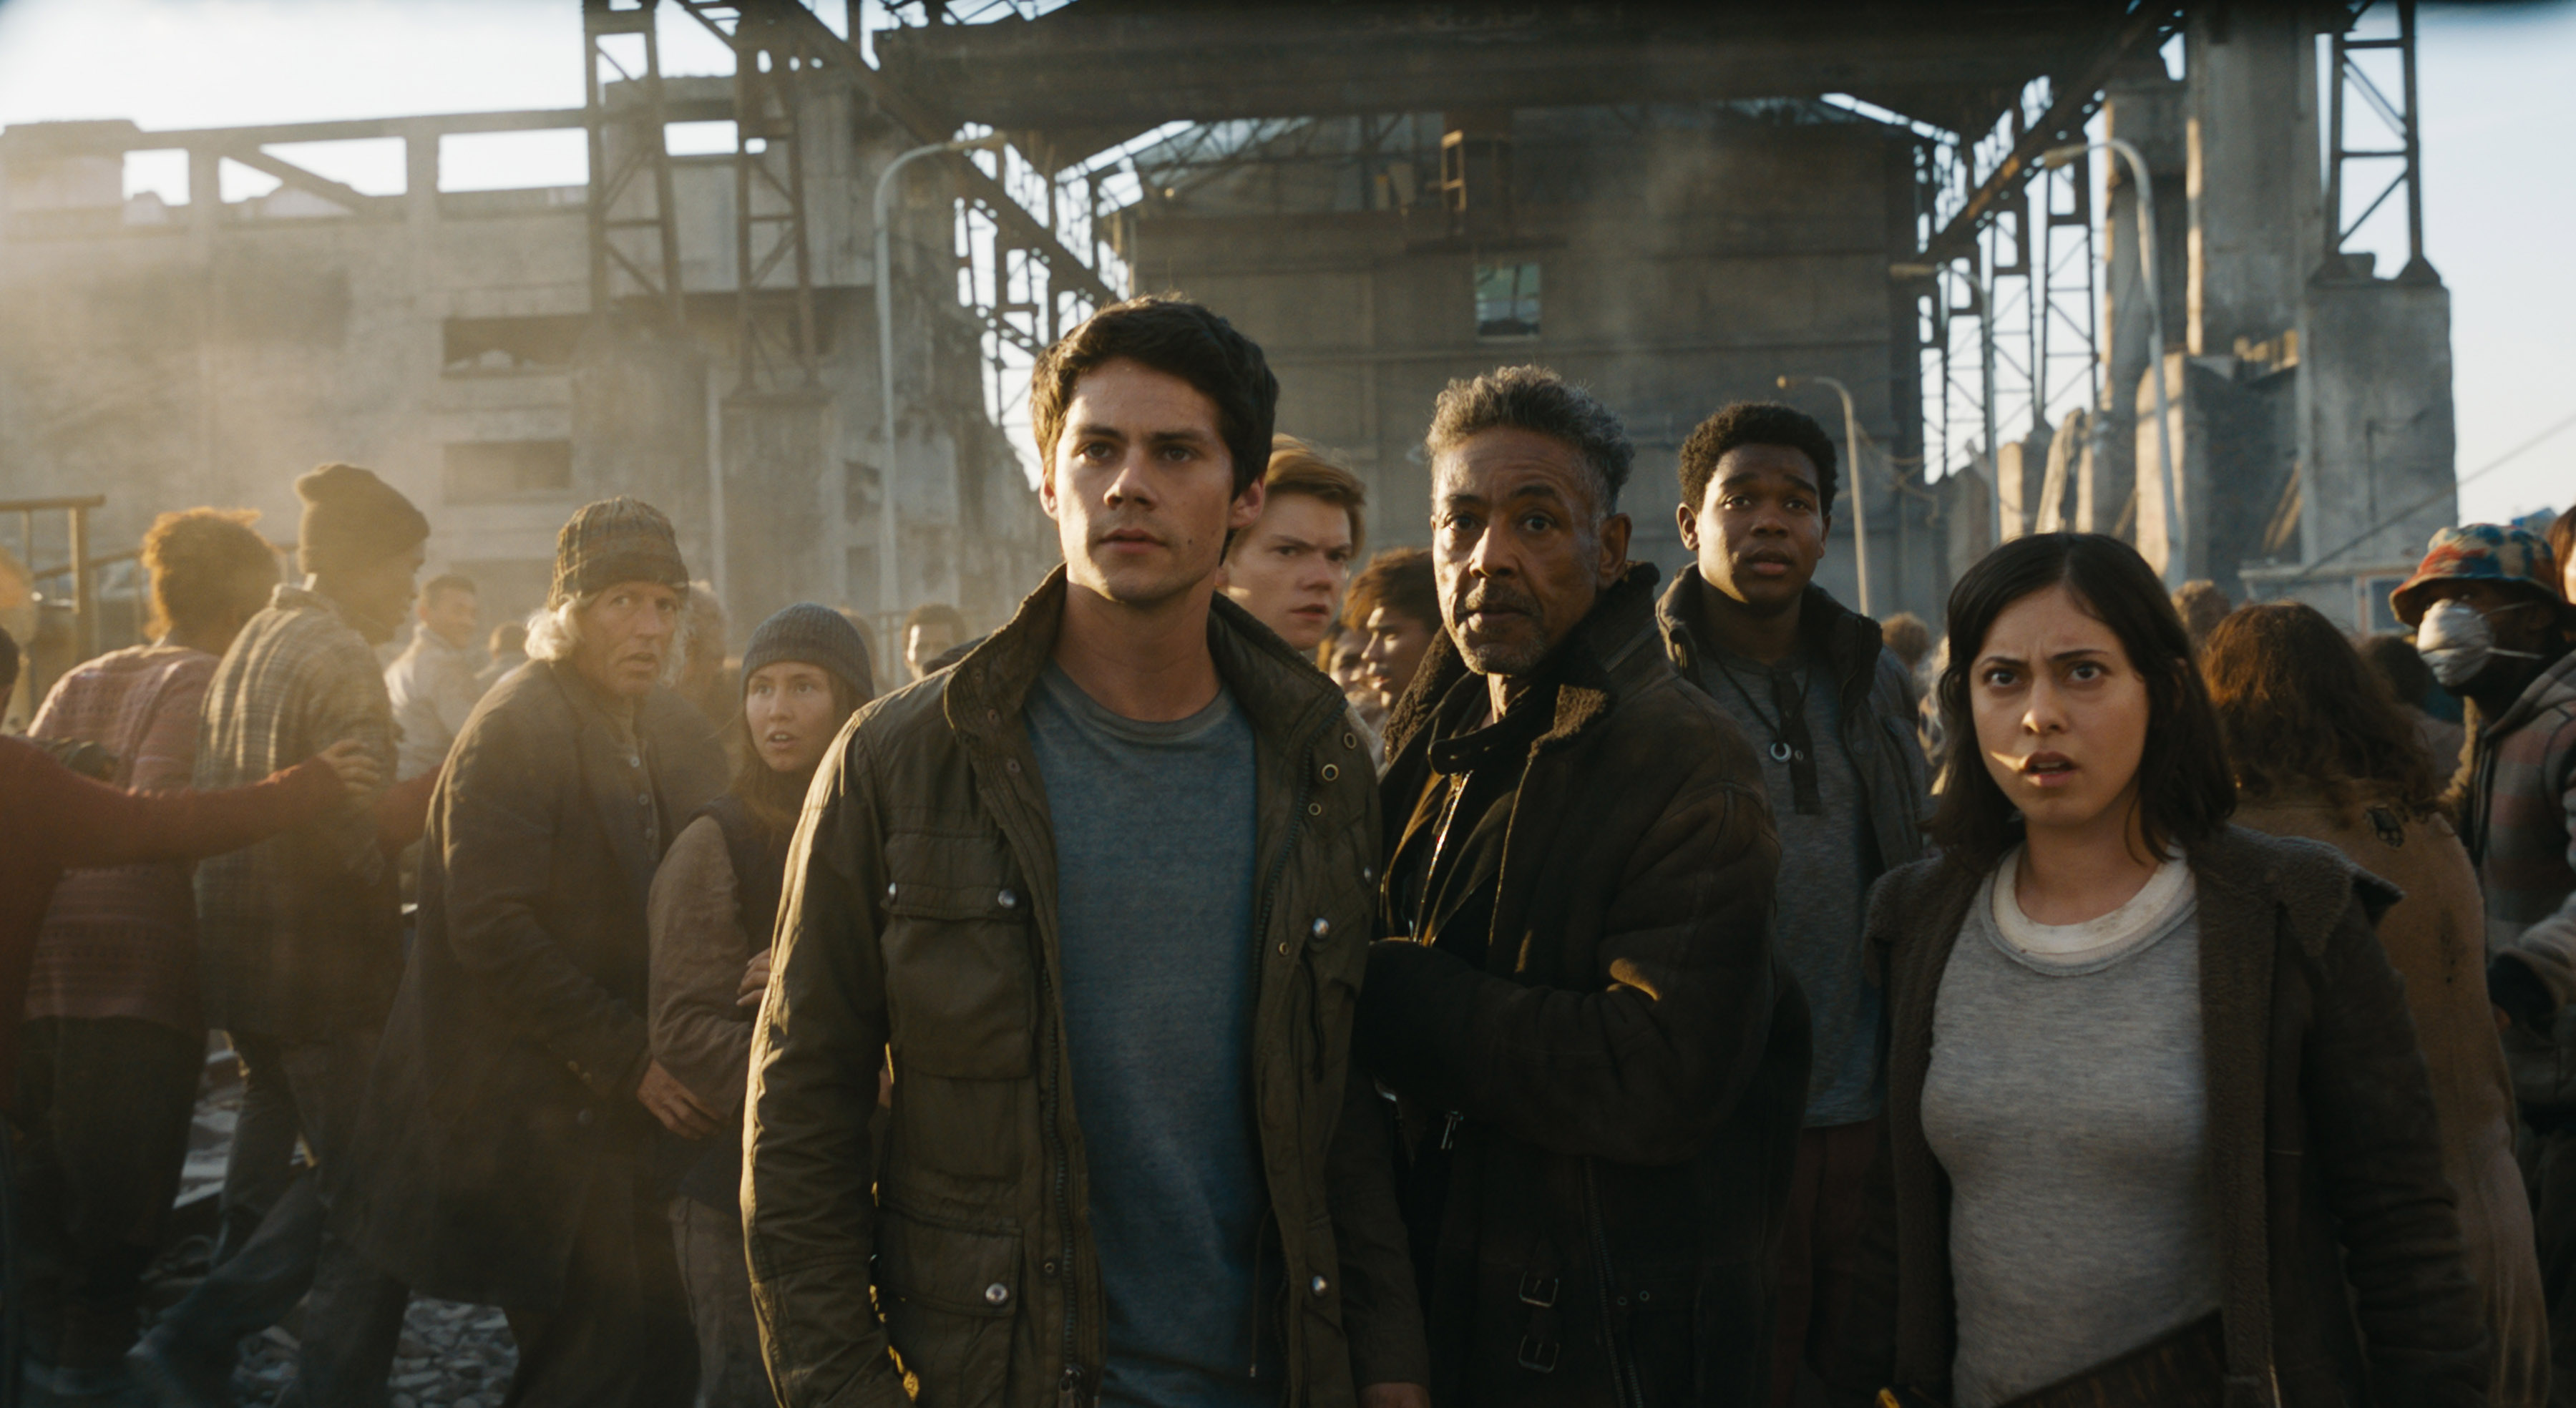 First trailer for delayed Maze Runner film promises gripping train heist